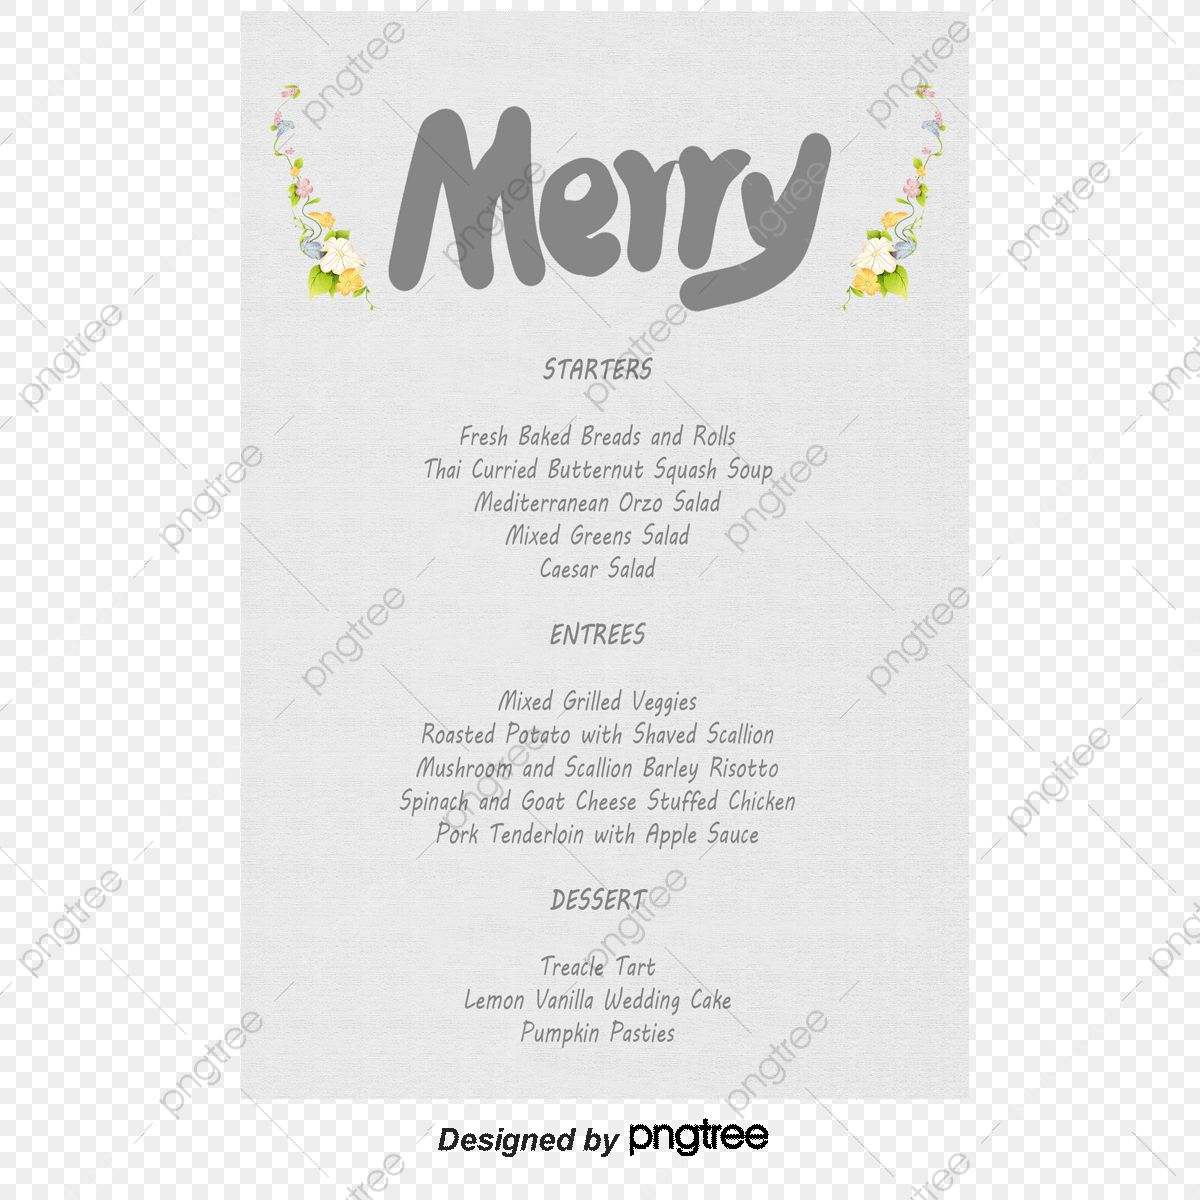 009 Exceptional Free Wedding Menu Template High Definition  Templates Printable For MacFull